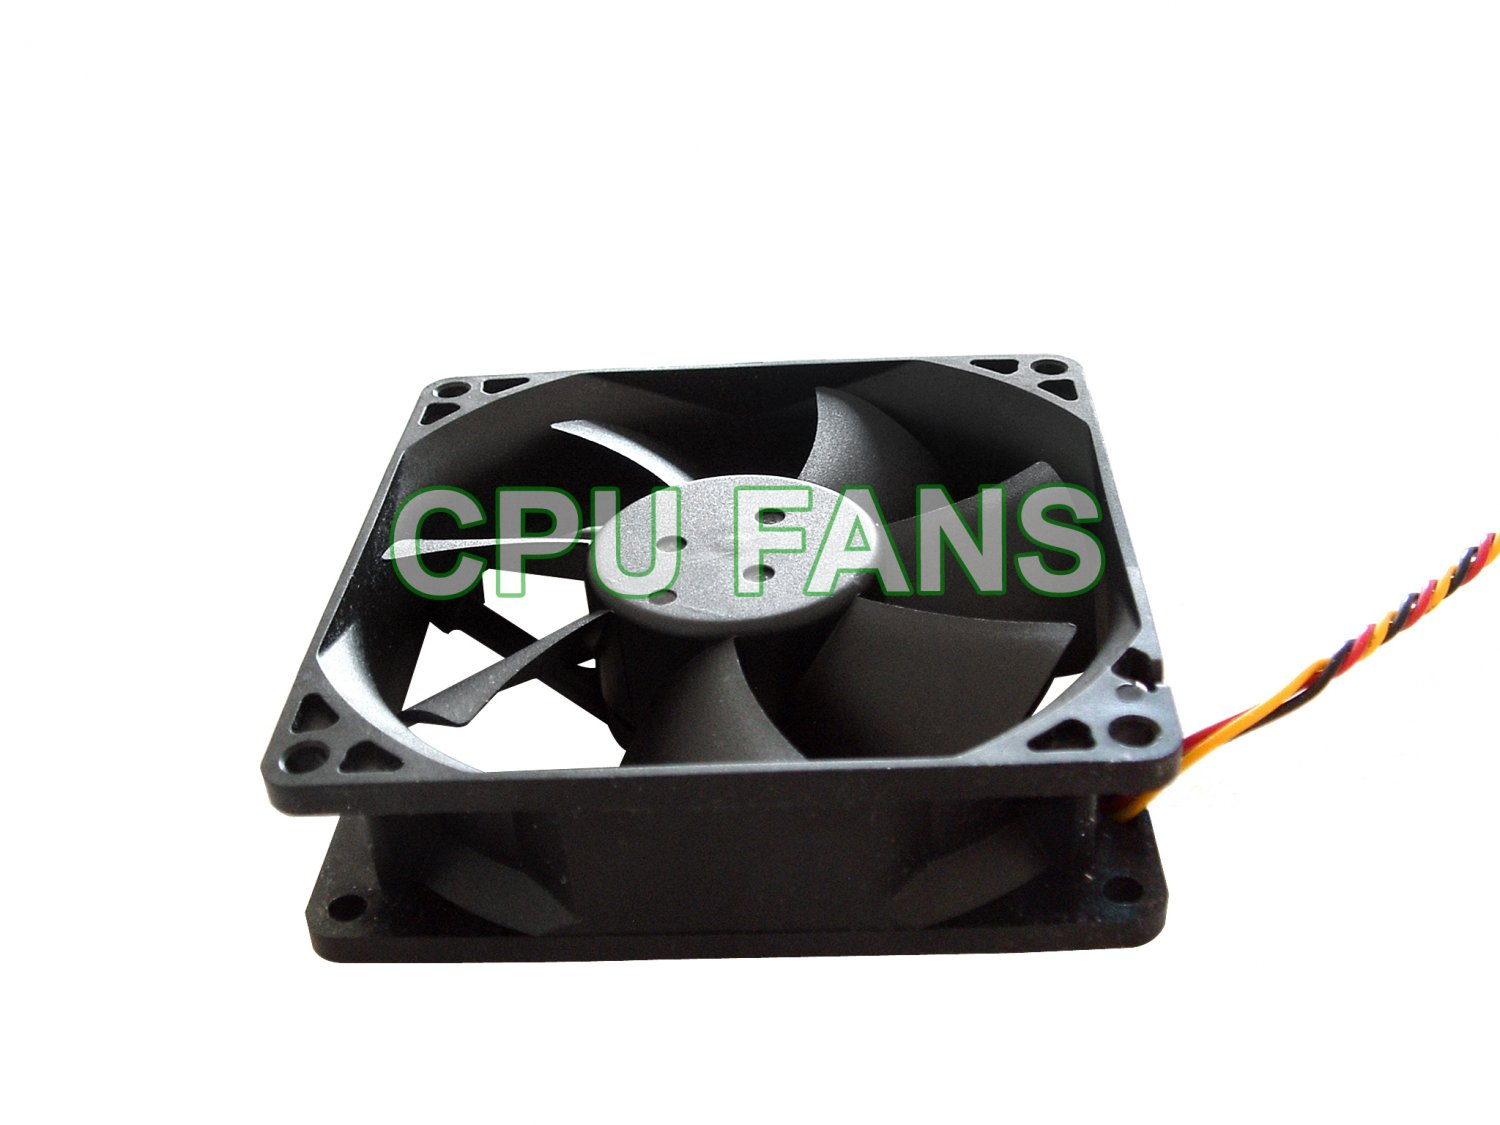 Hewlett-Packard HP Media Center M7470N Case Fan ER883AA ER883AAR System Cooling Fan